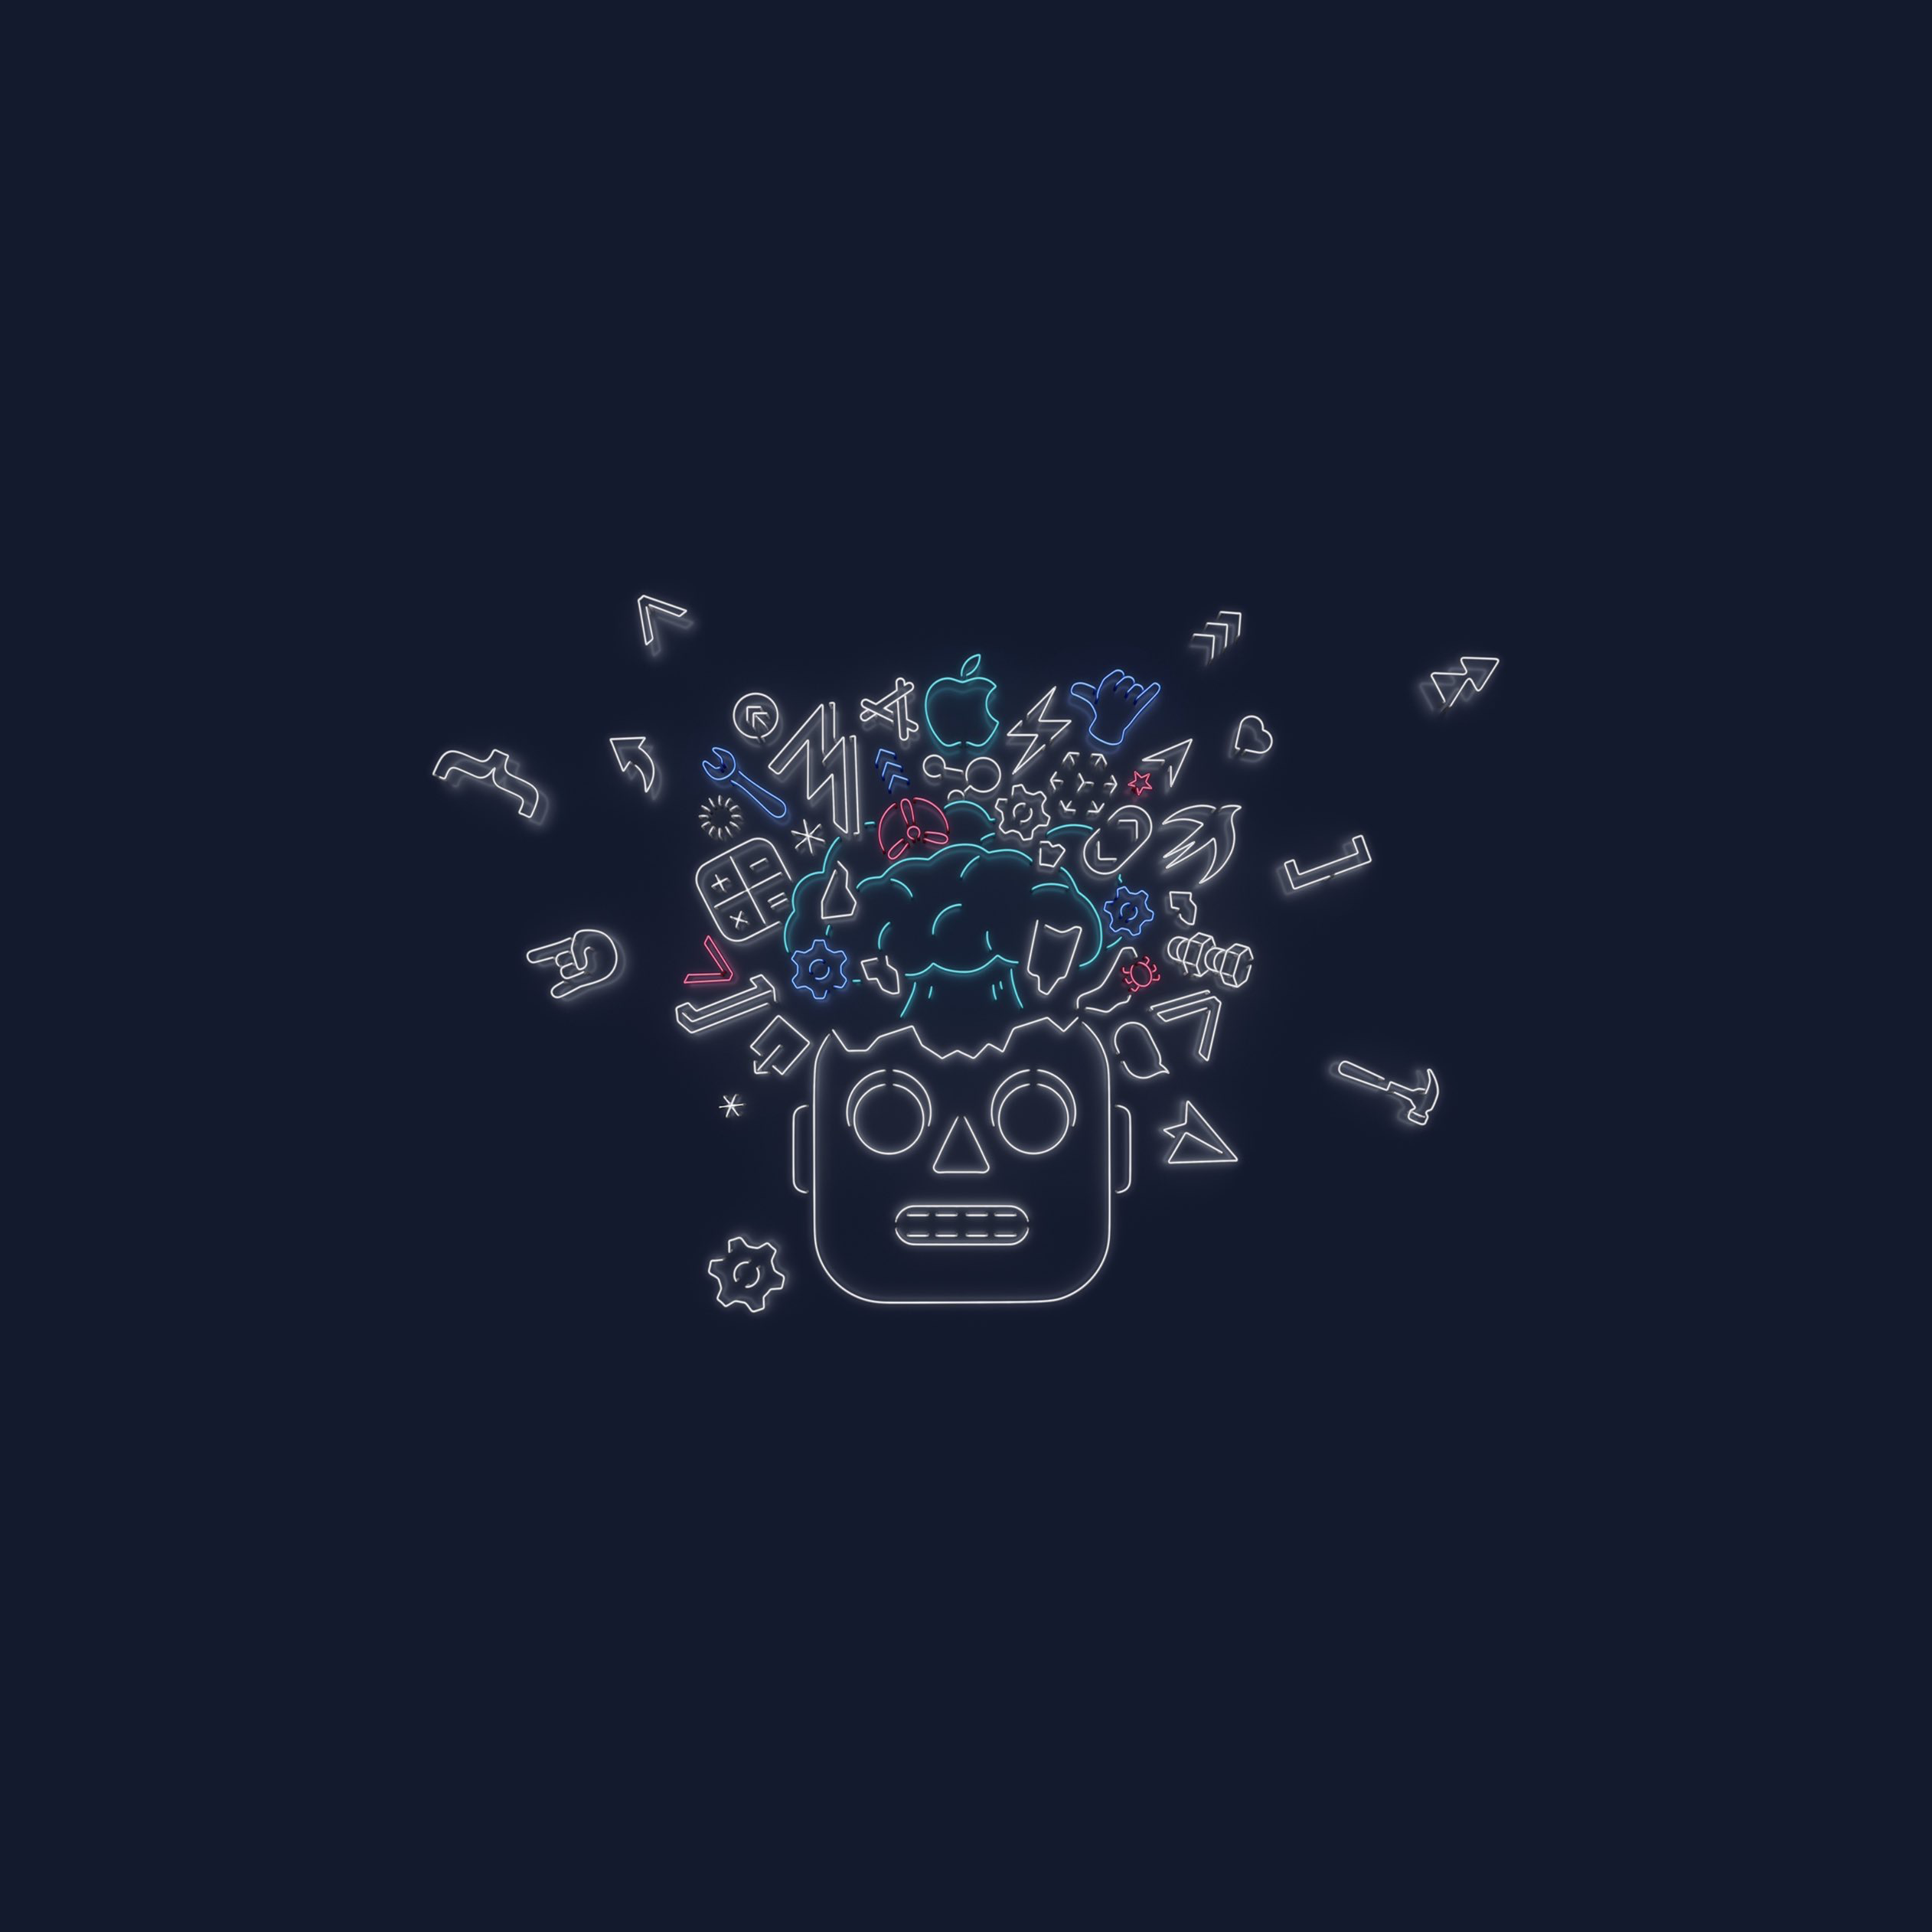 WWDC 2019 Wallpapers